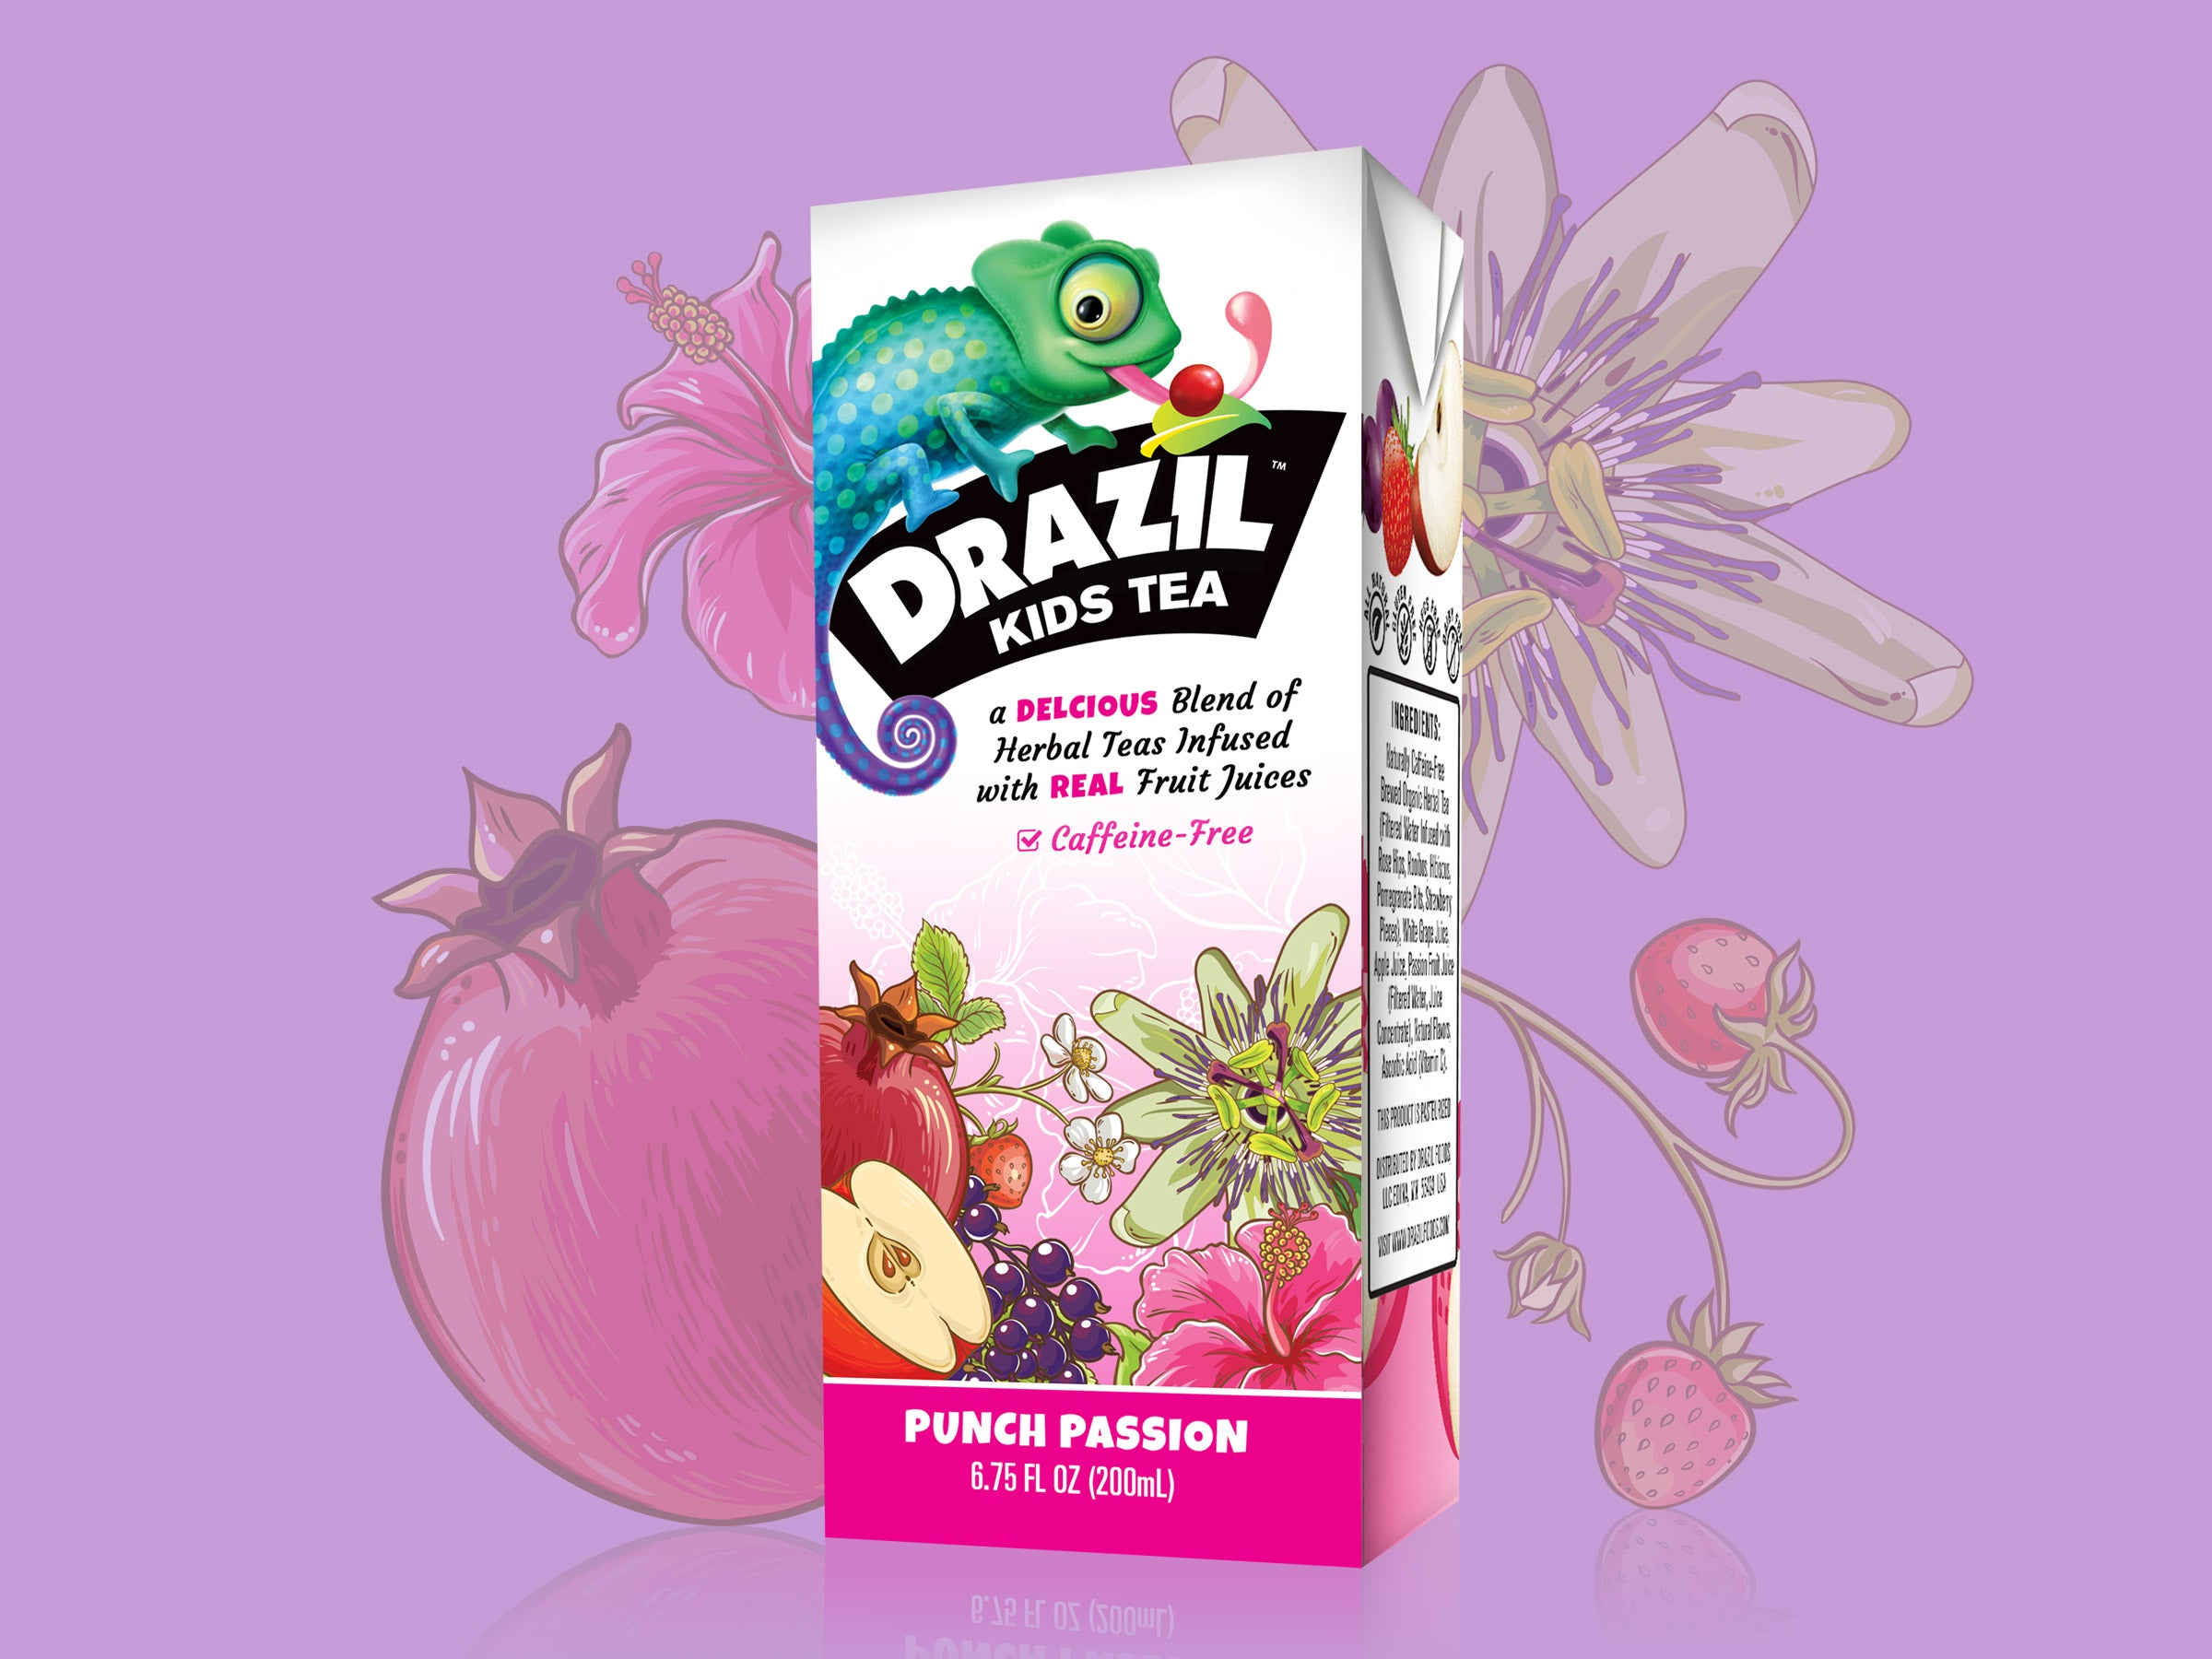 Drazil Kids Tea packaging